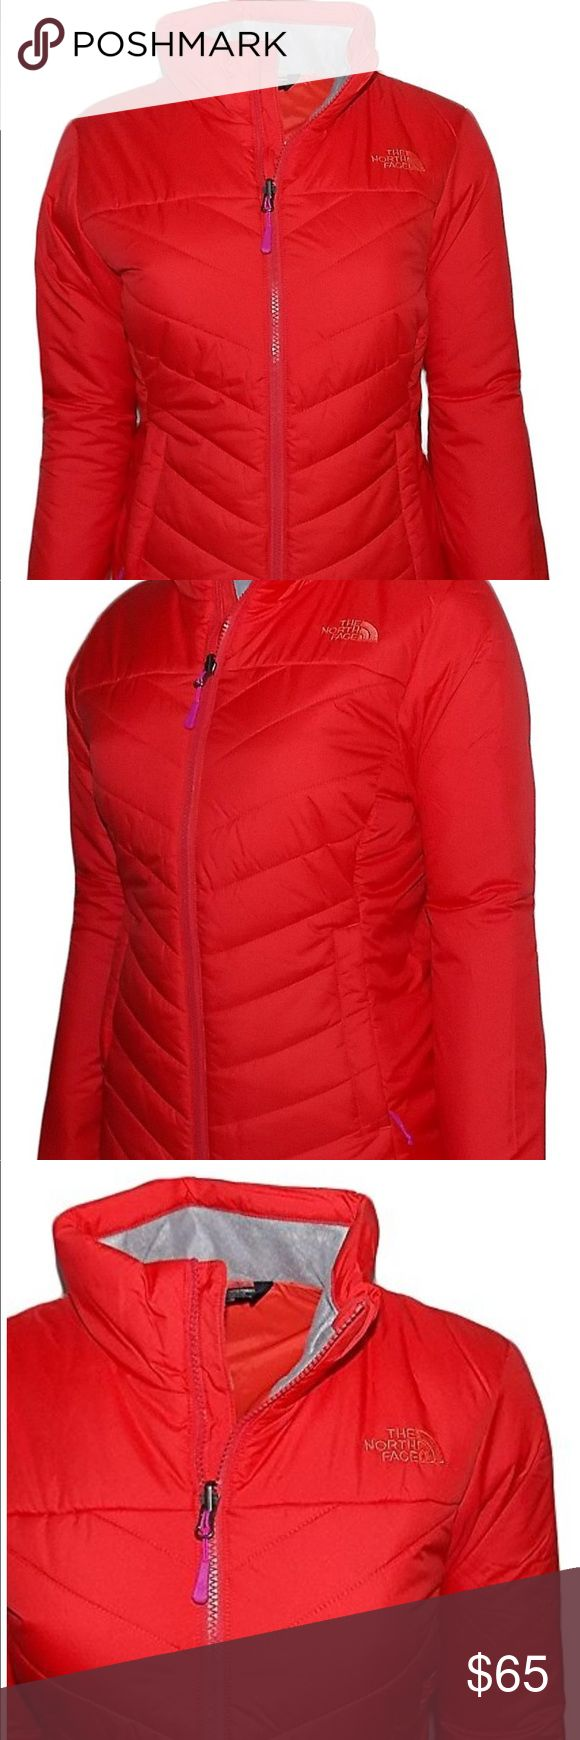 The North Face woman's Red Wander insulated jacket The North Face Woman's Wander insulated jacket XL The North Face Jackets & Coats Puffers